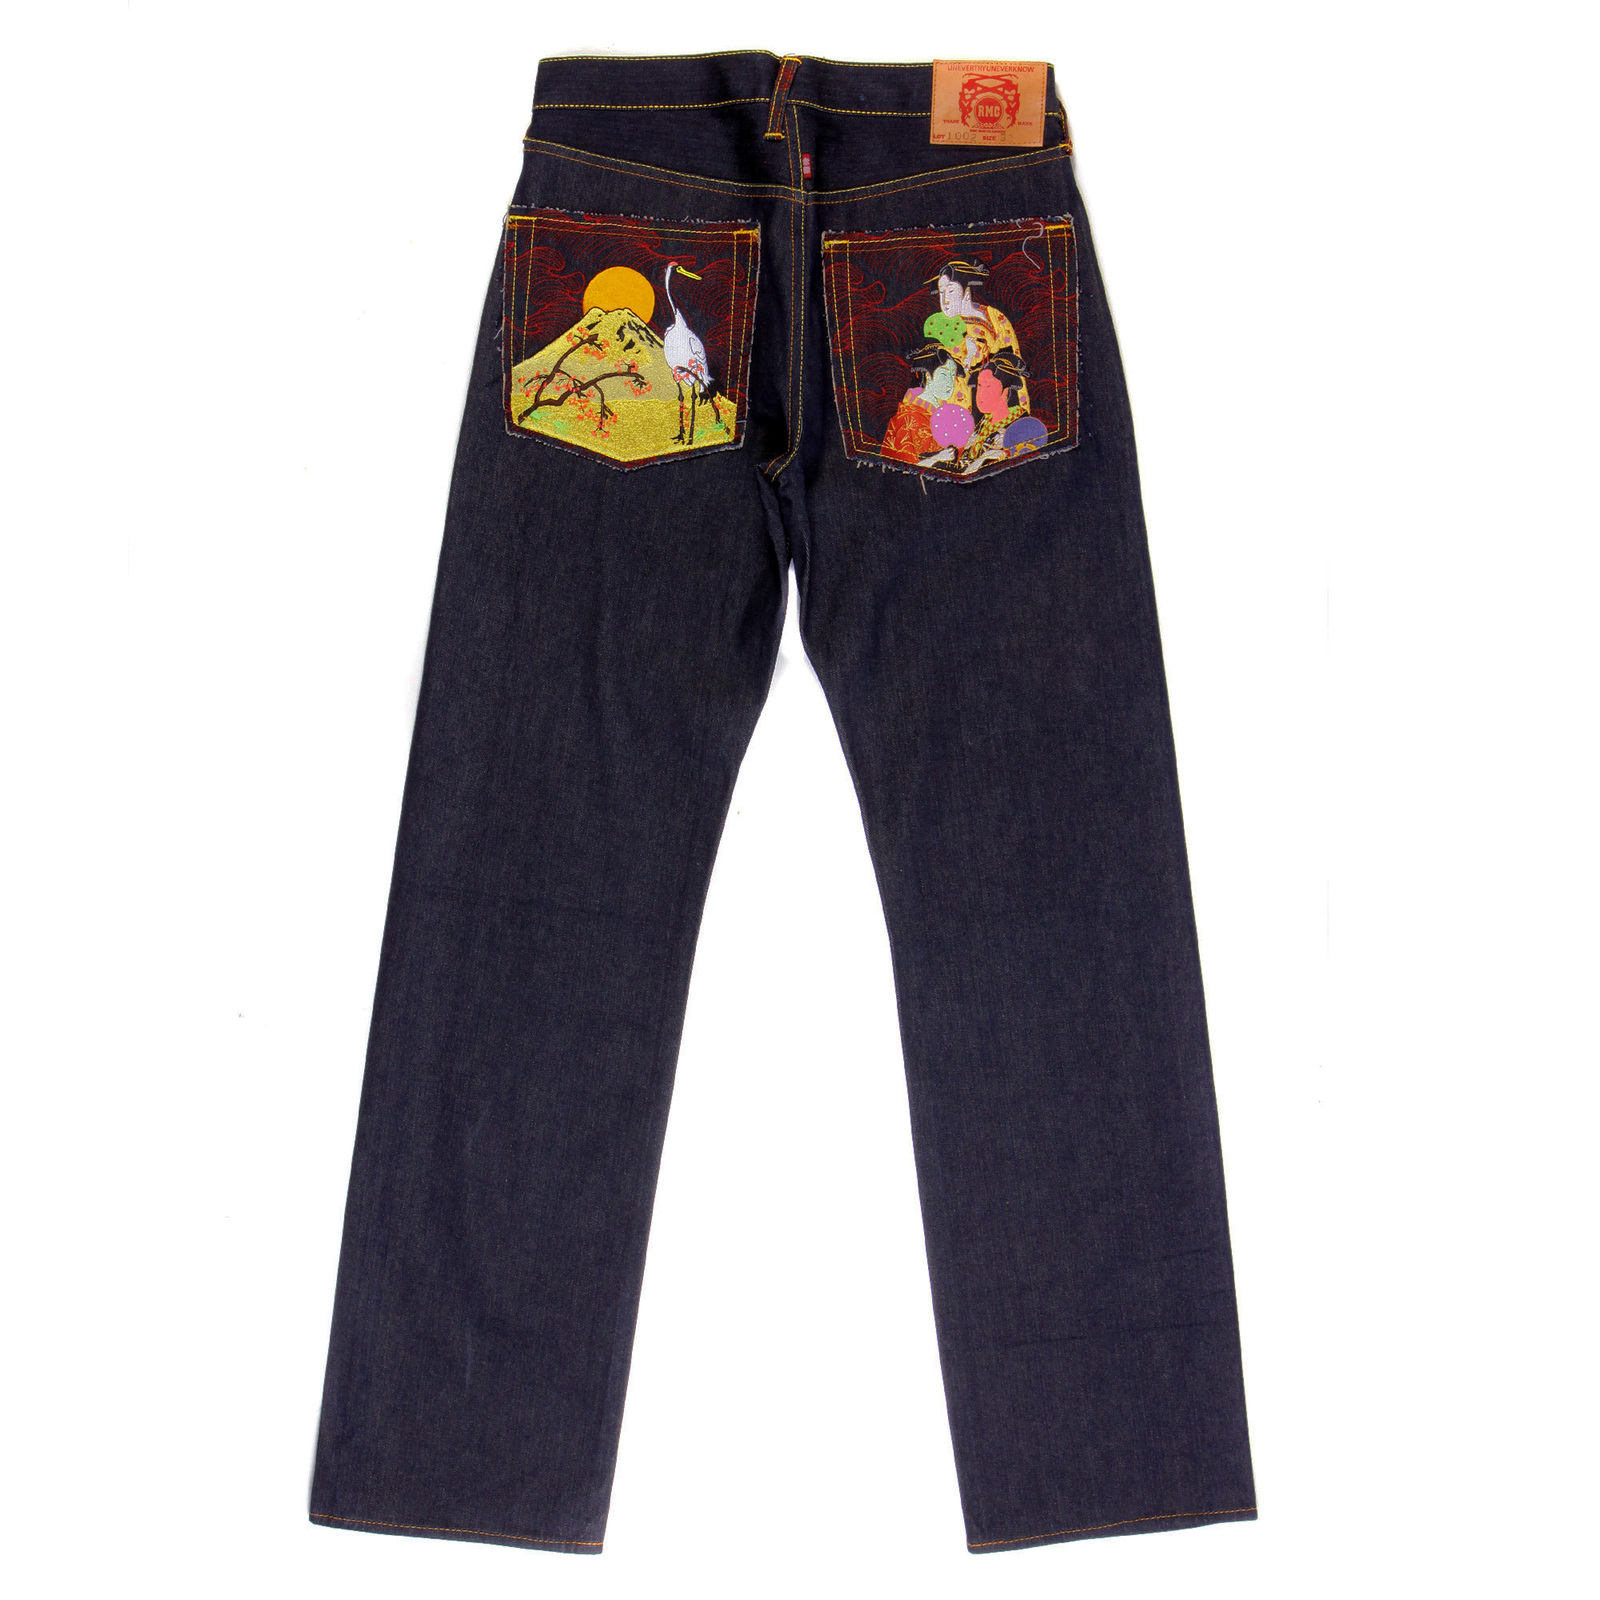 Red Monkey Japanese Selvedge Denim Embroidered Jeans